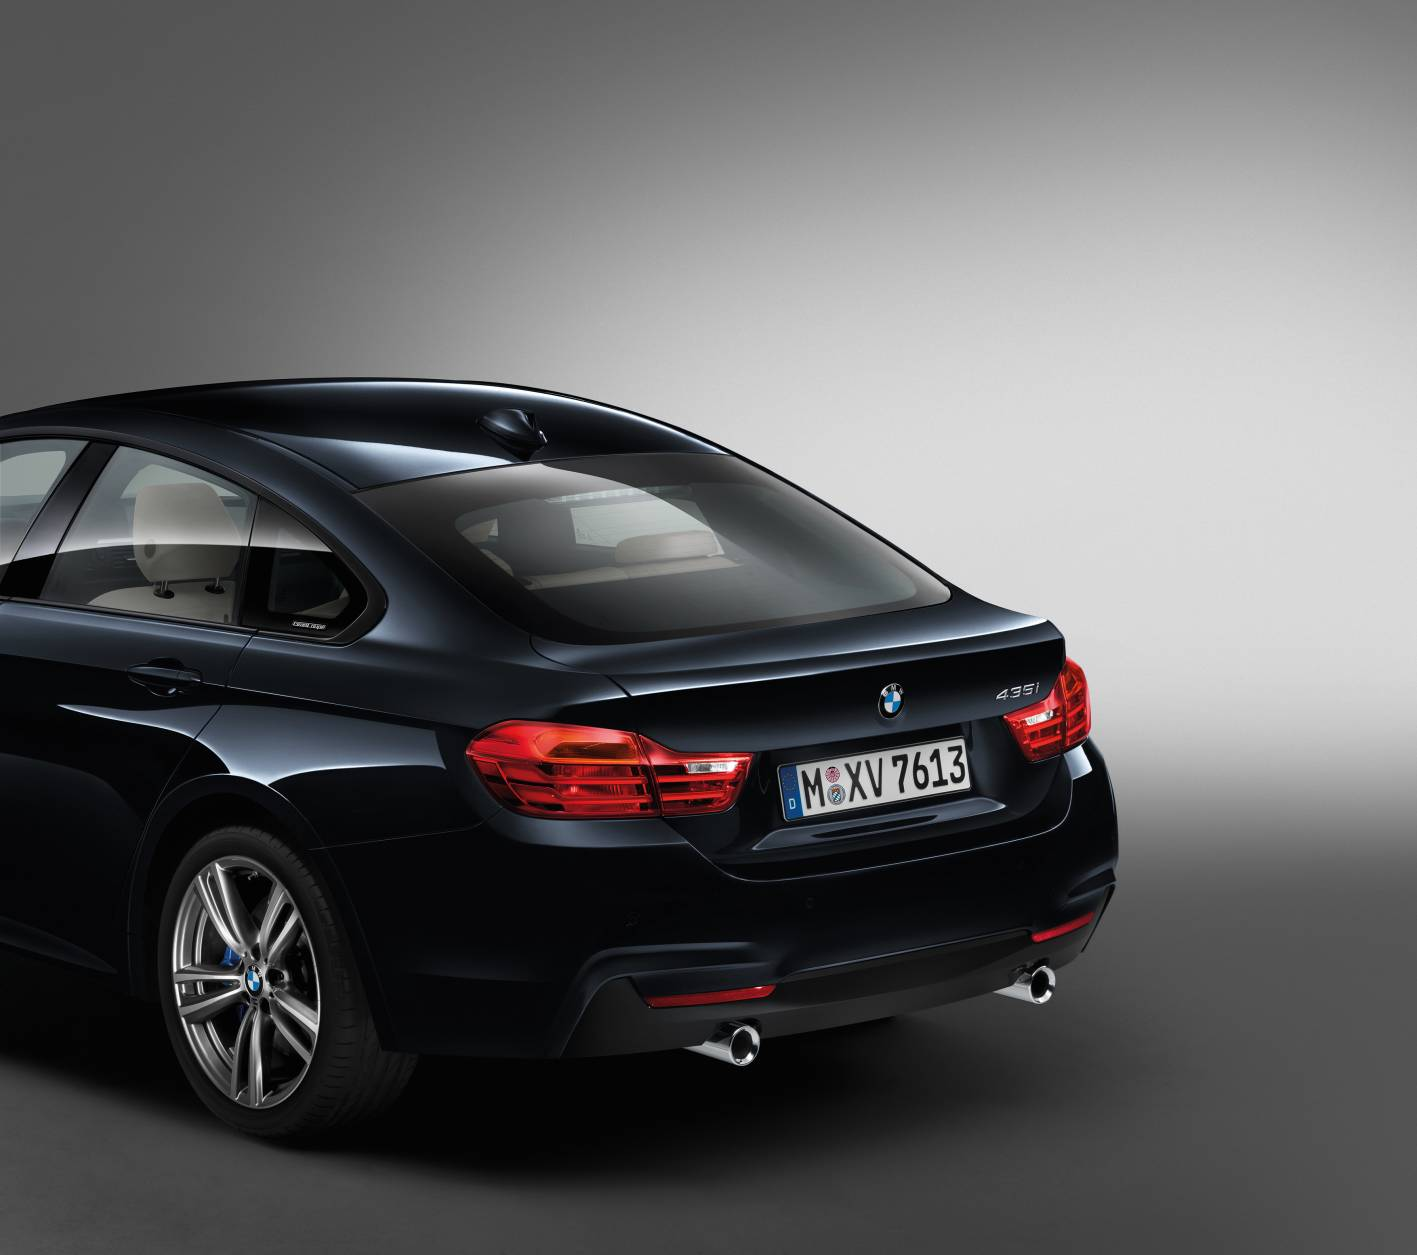 News: 4-Series Gran Coupé Officially Revealed